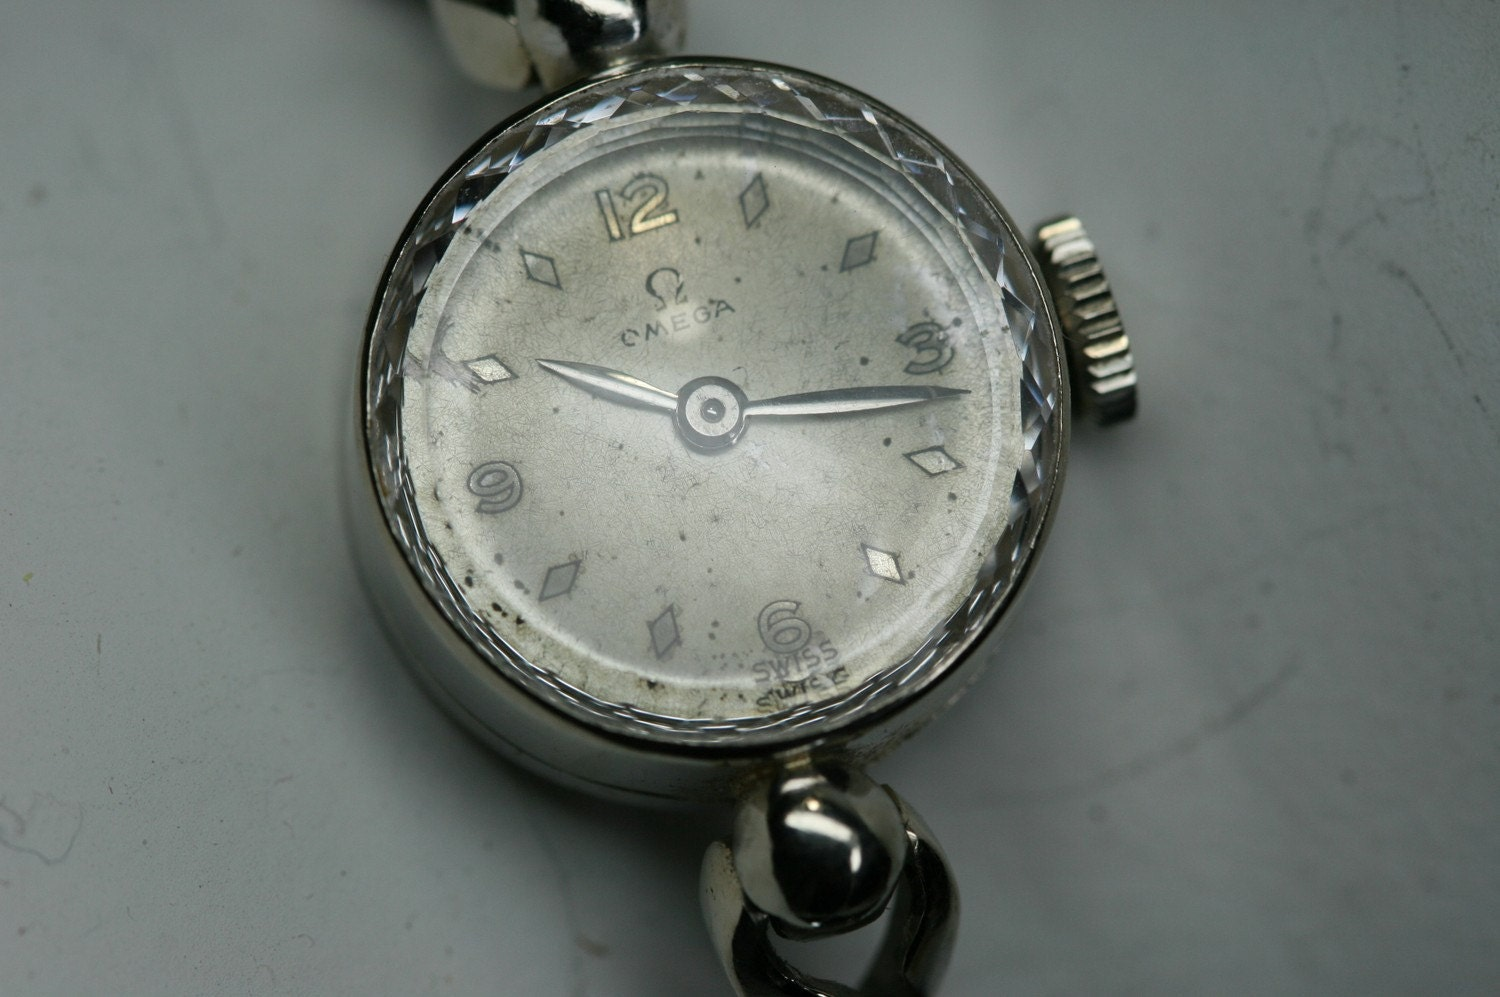 Omega-Womens Vintage 14k White Gold Omega Watch and Watchband